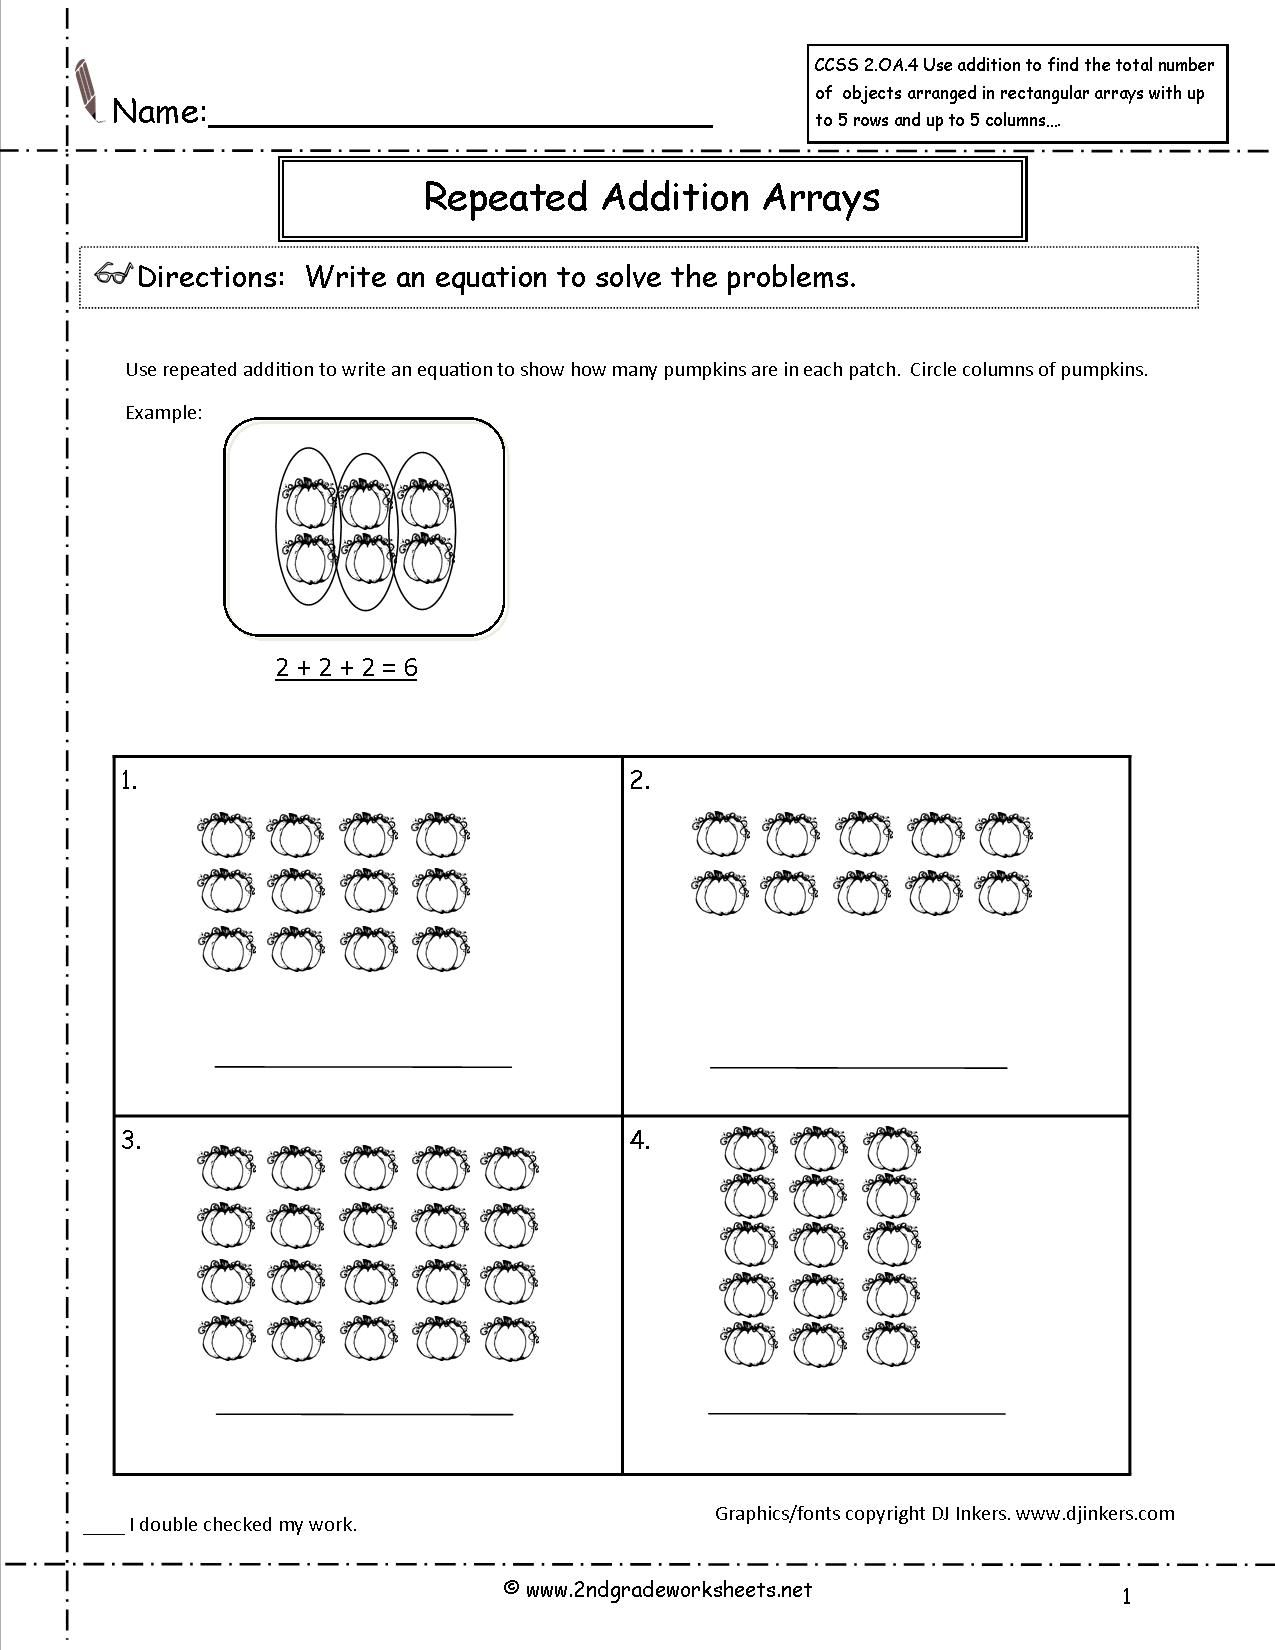 small resolution of pumpkins repeated addition worksheet   Repeated addition worksheets